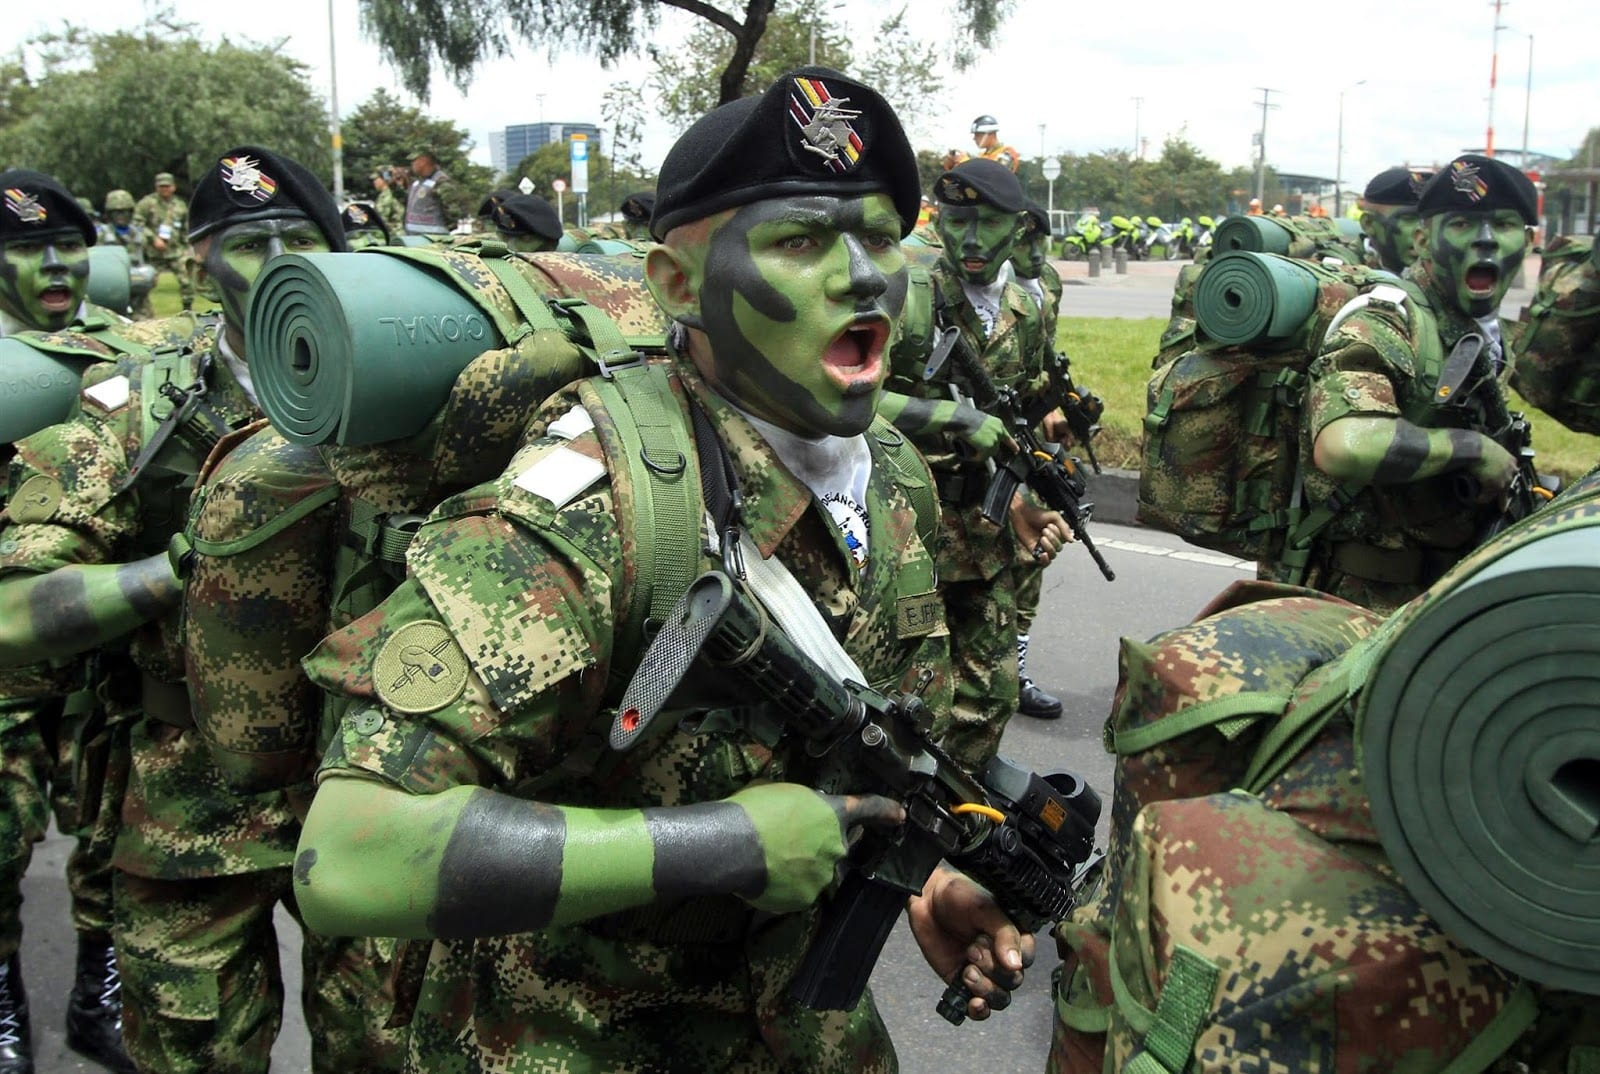 Image [Colombian soliders on parade in Bogota. Photo: Mauricio Duenas Castaneda]